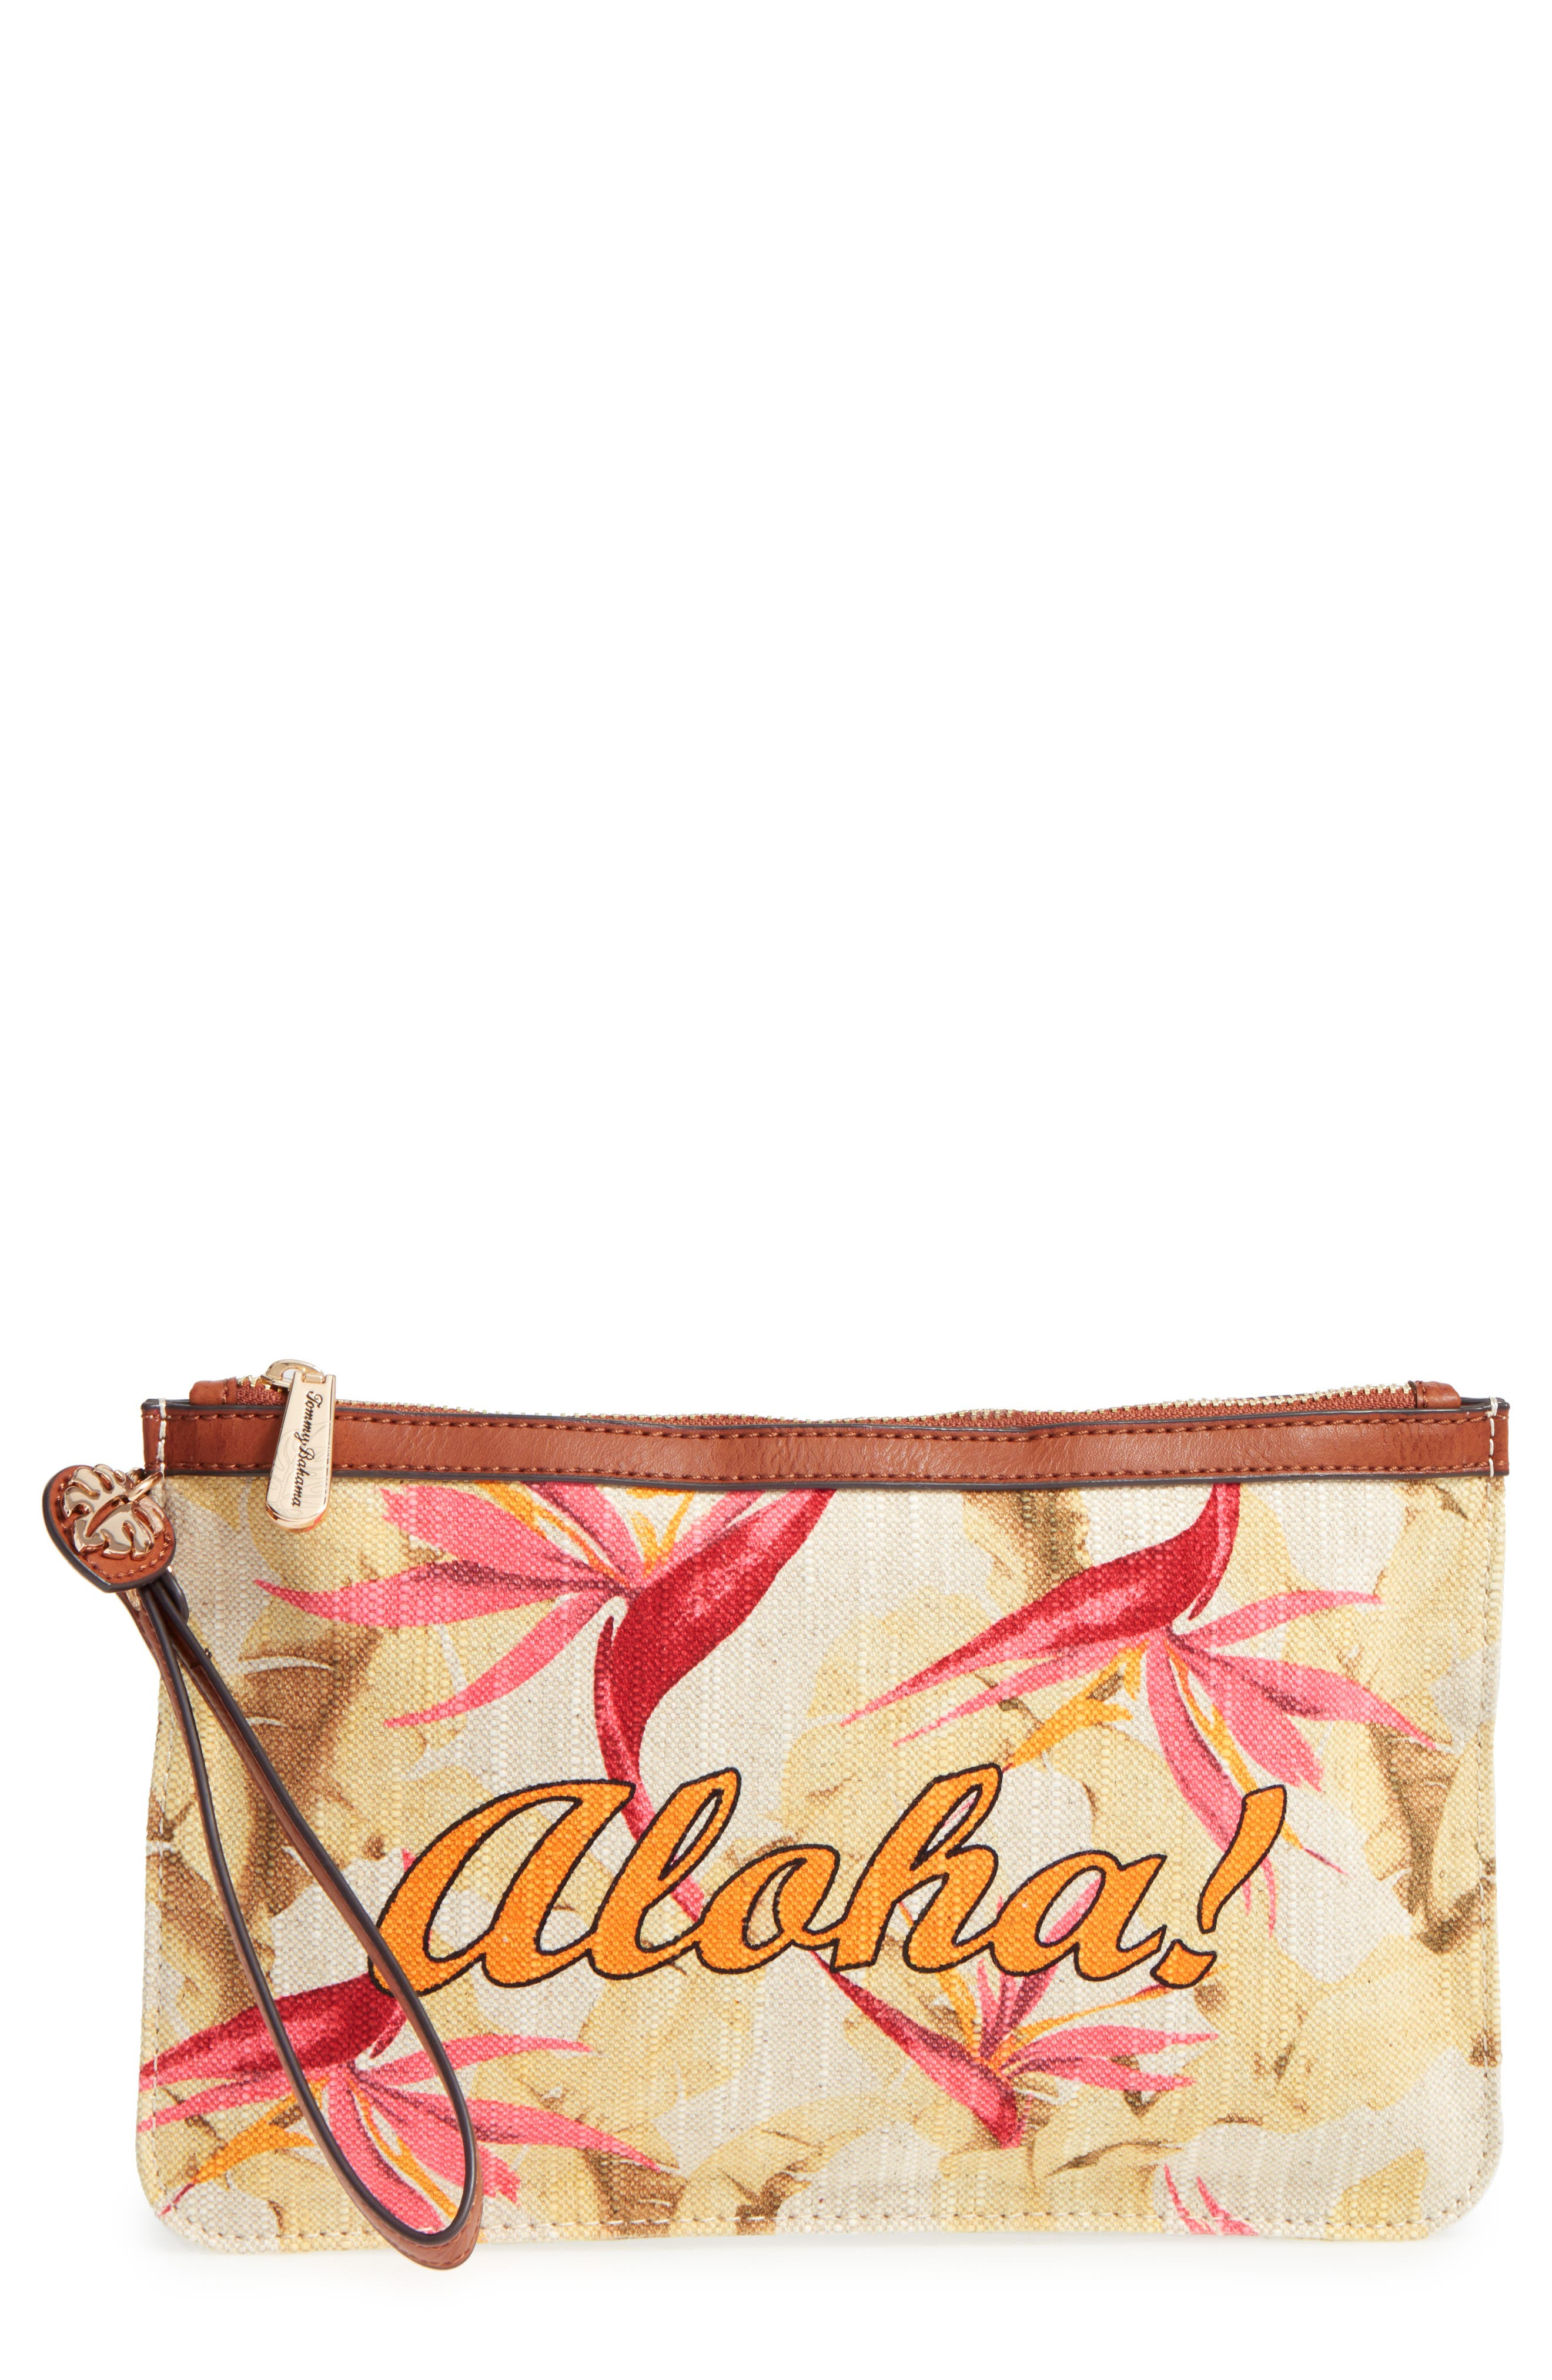 Boca Chica Beach Wristlet,                             Main thumbnail 1, color,                             Aloha